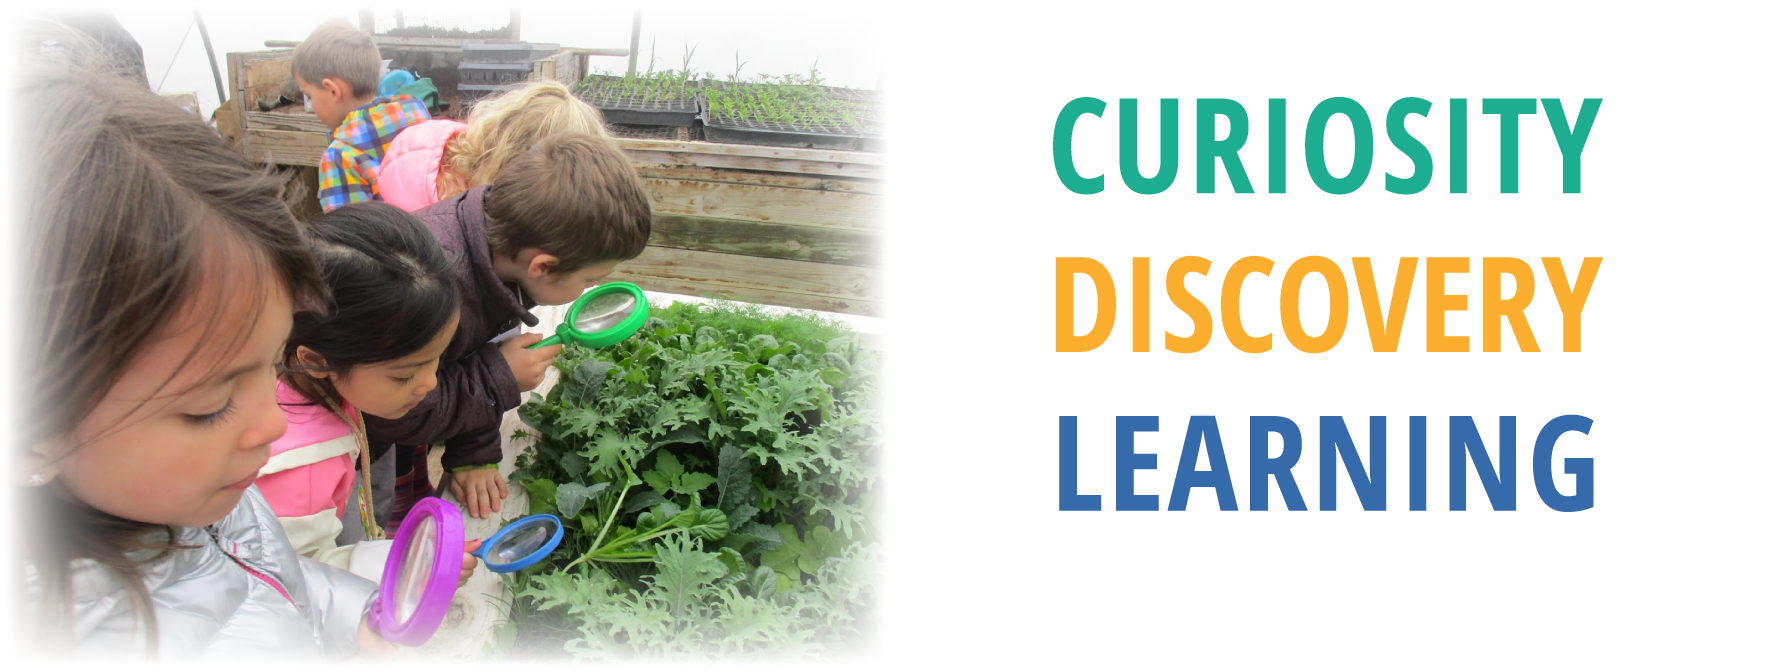 Text: Curiosity, discovery, learning. Image: Children gardening